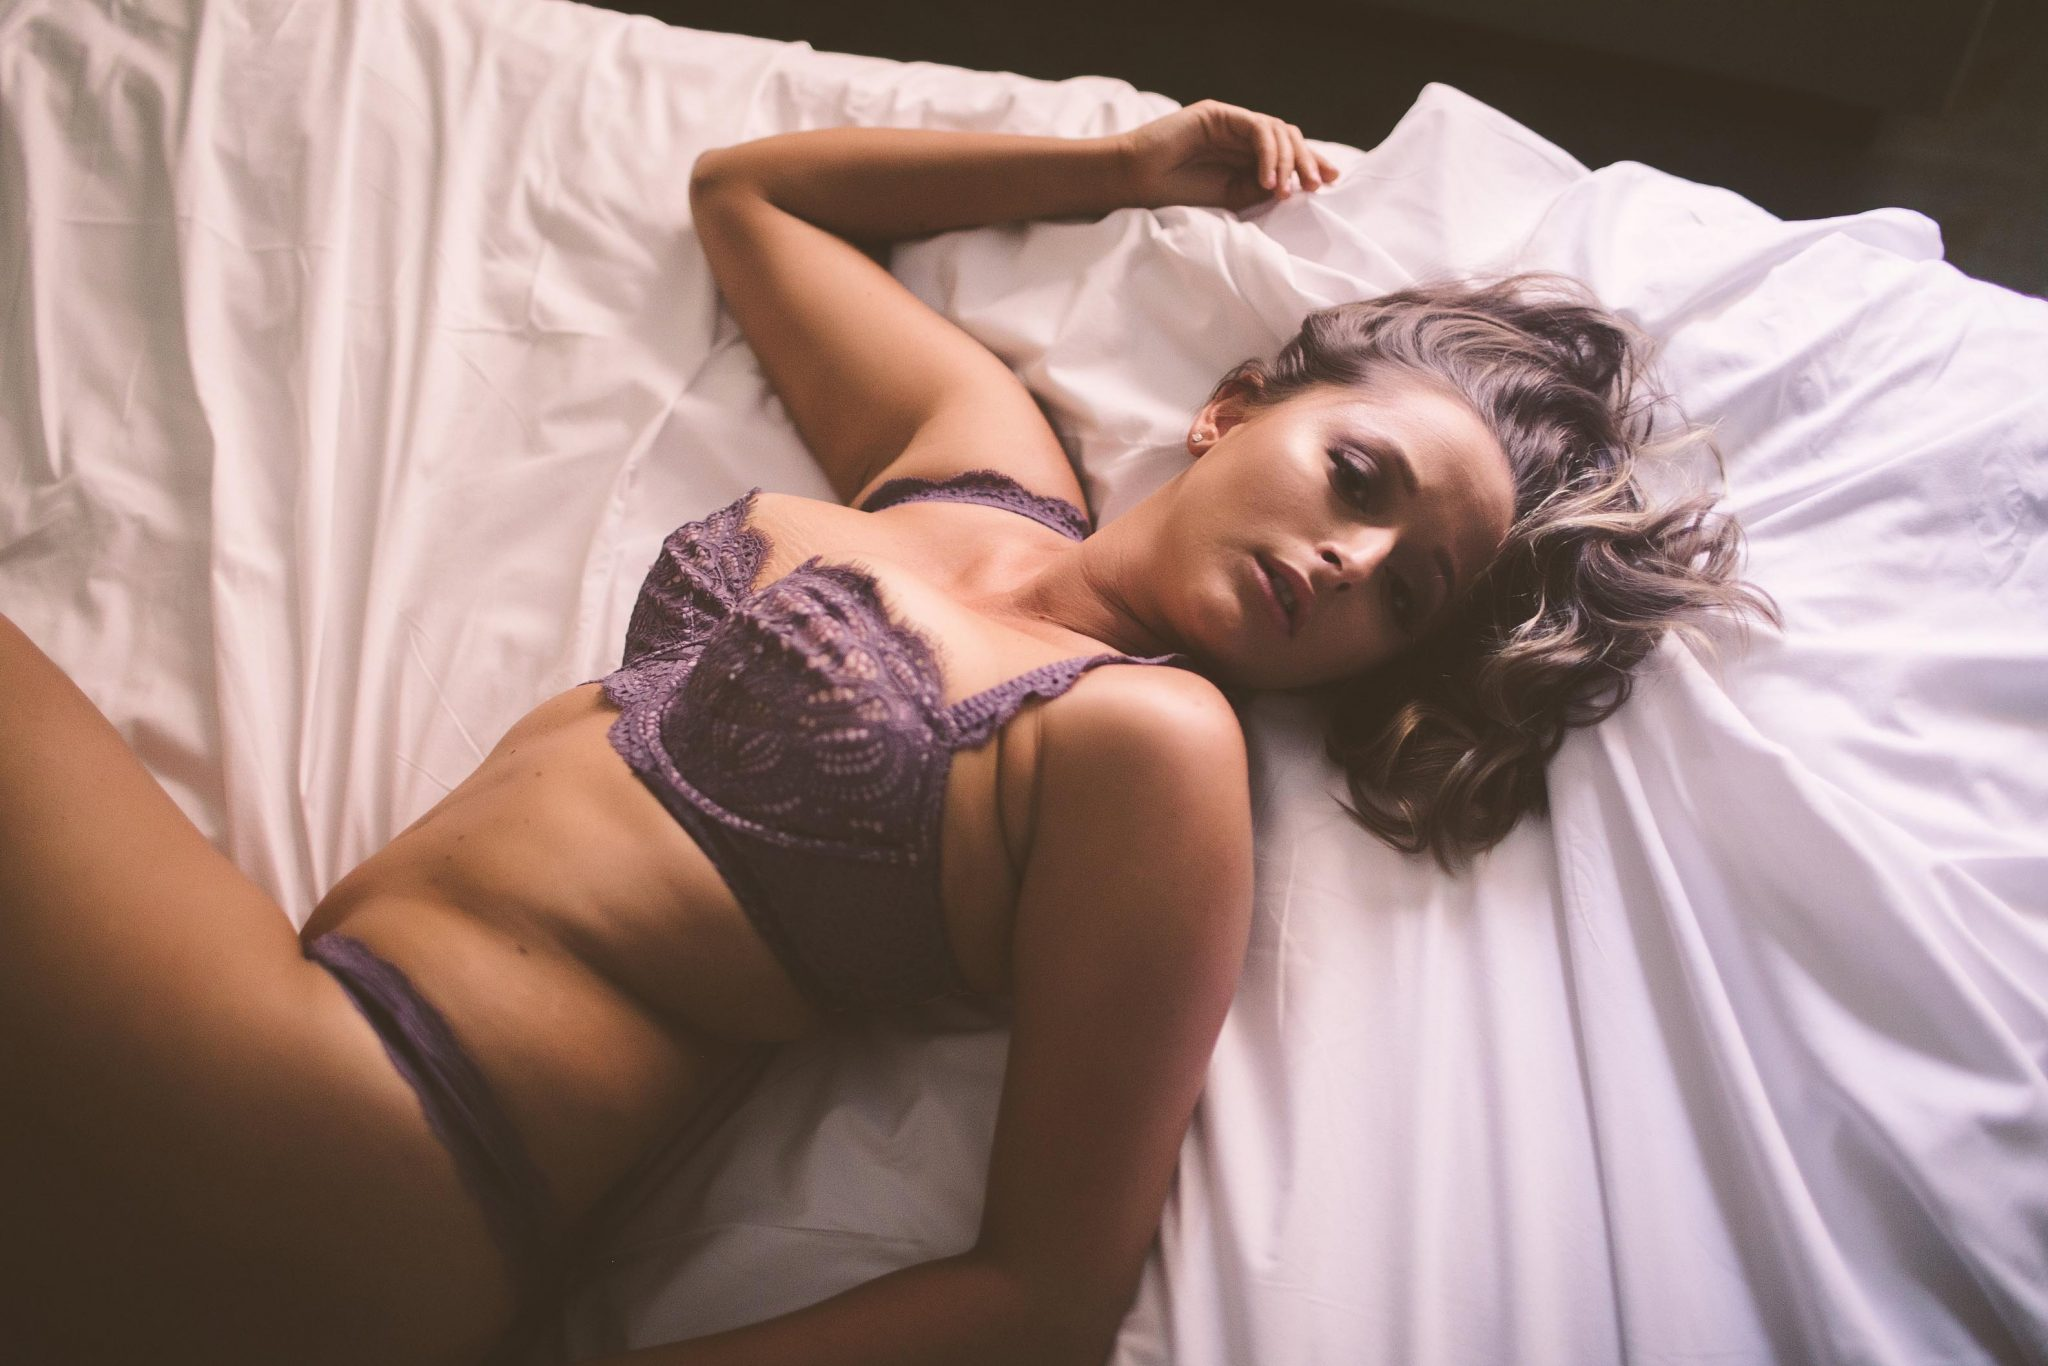 A lingerie model laying on a bed in a sexy boudoir pose